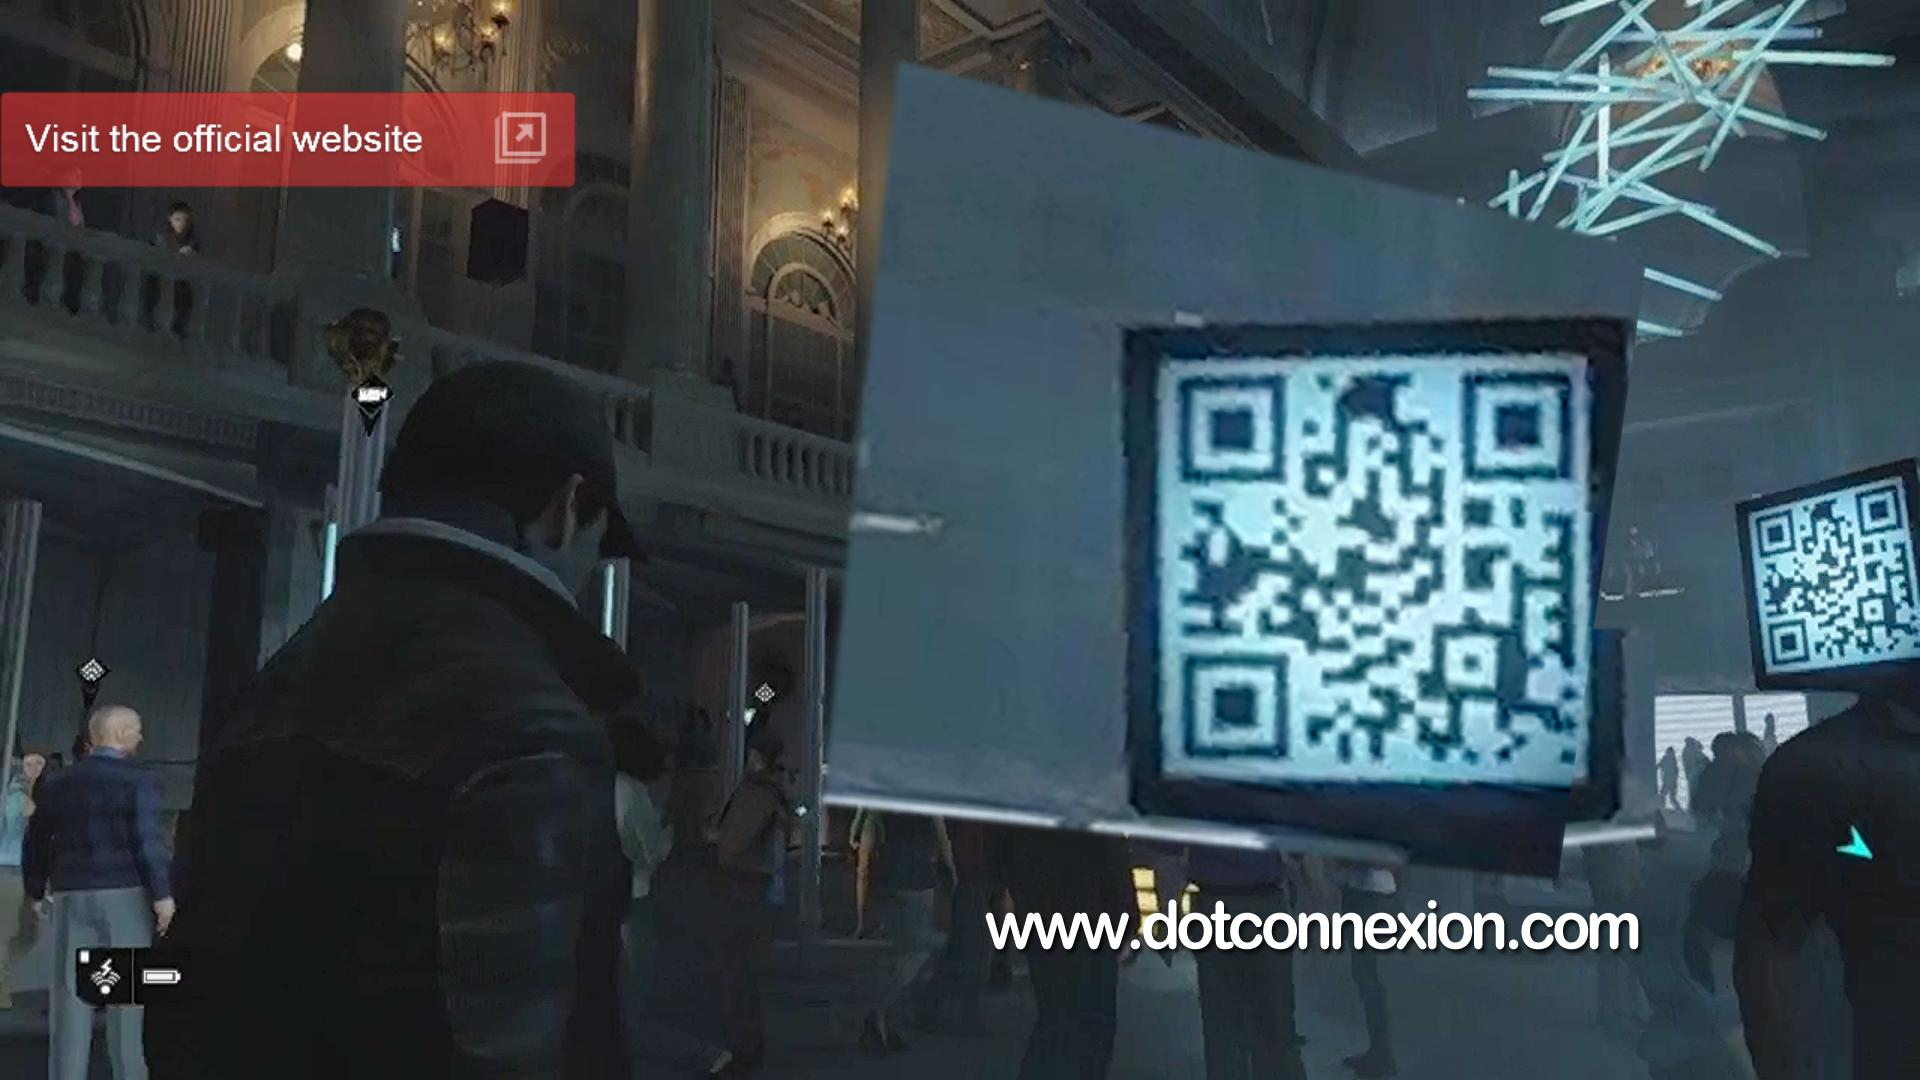 Hidden Qr Codes Watch Dogs